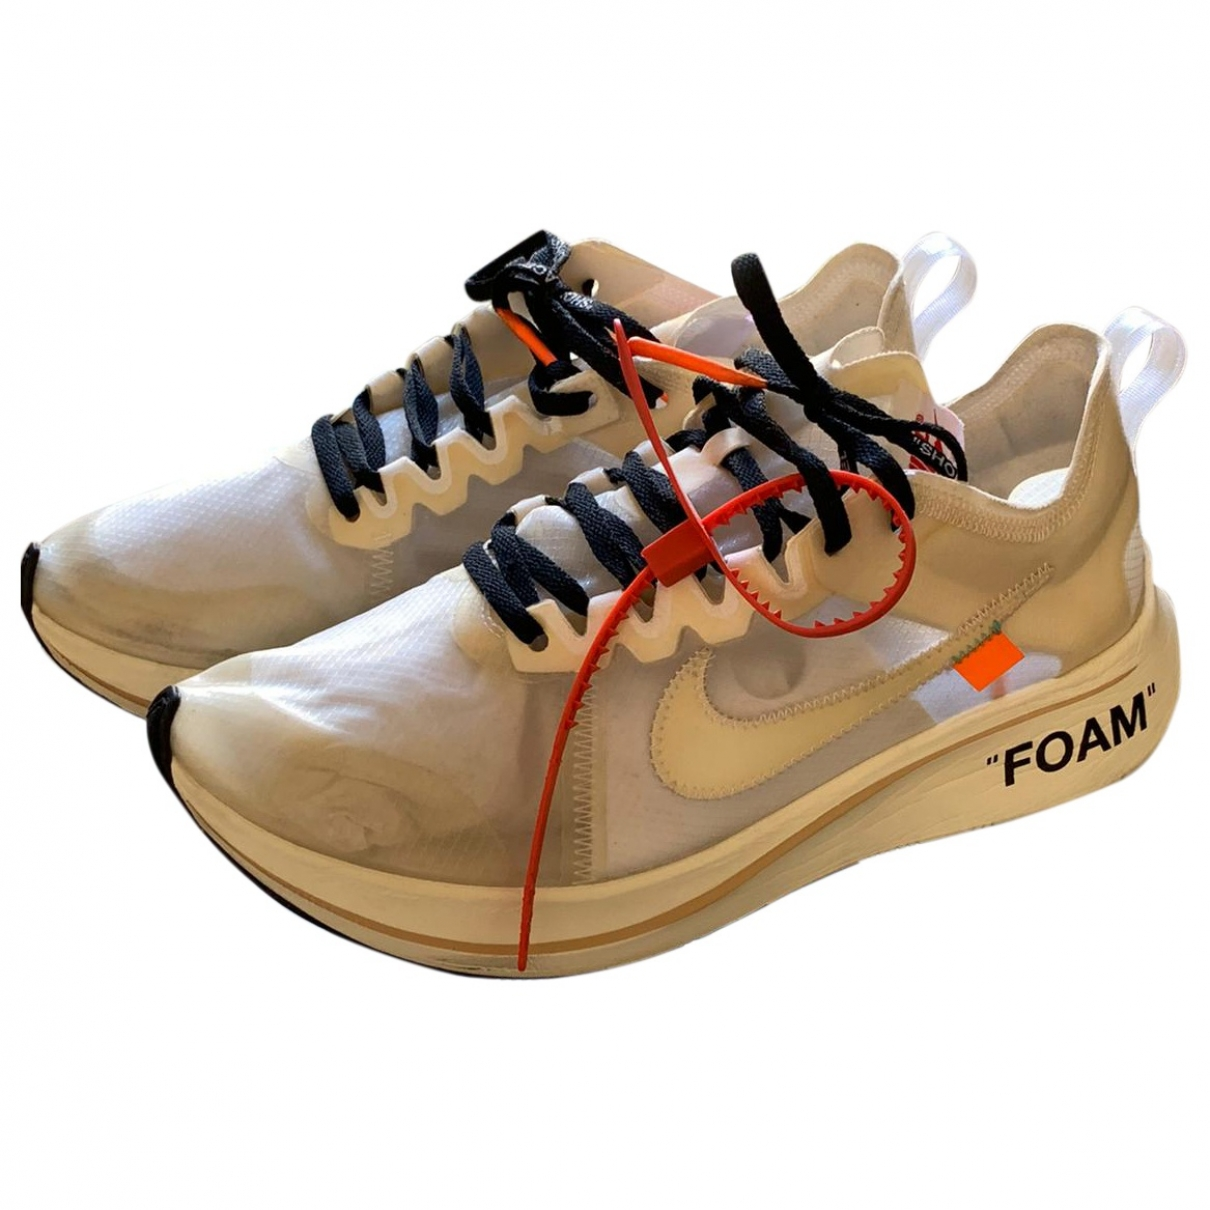 Nike X Off-white - Baskets Zoom Fly pour homme en toile - blanc